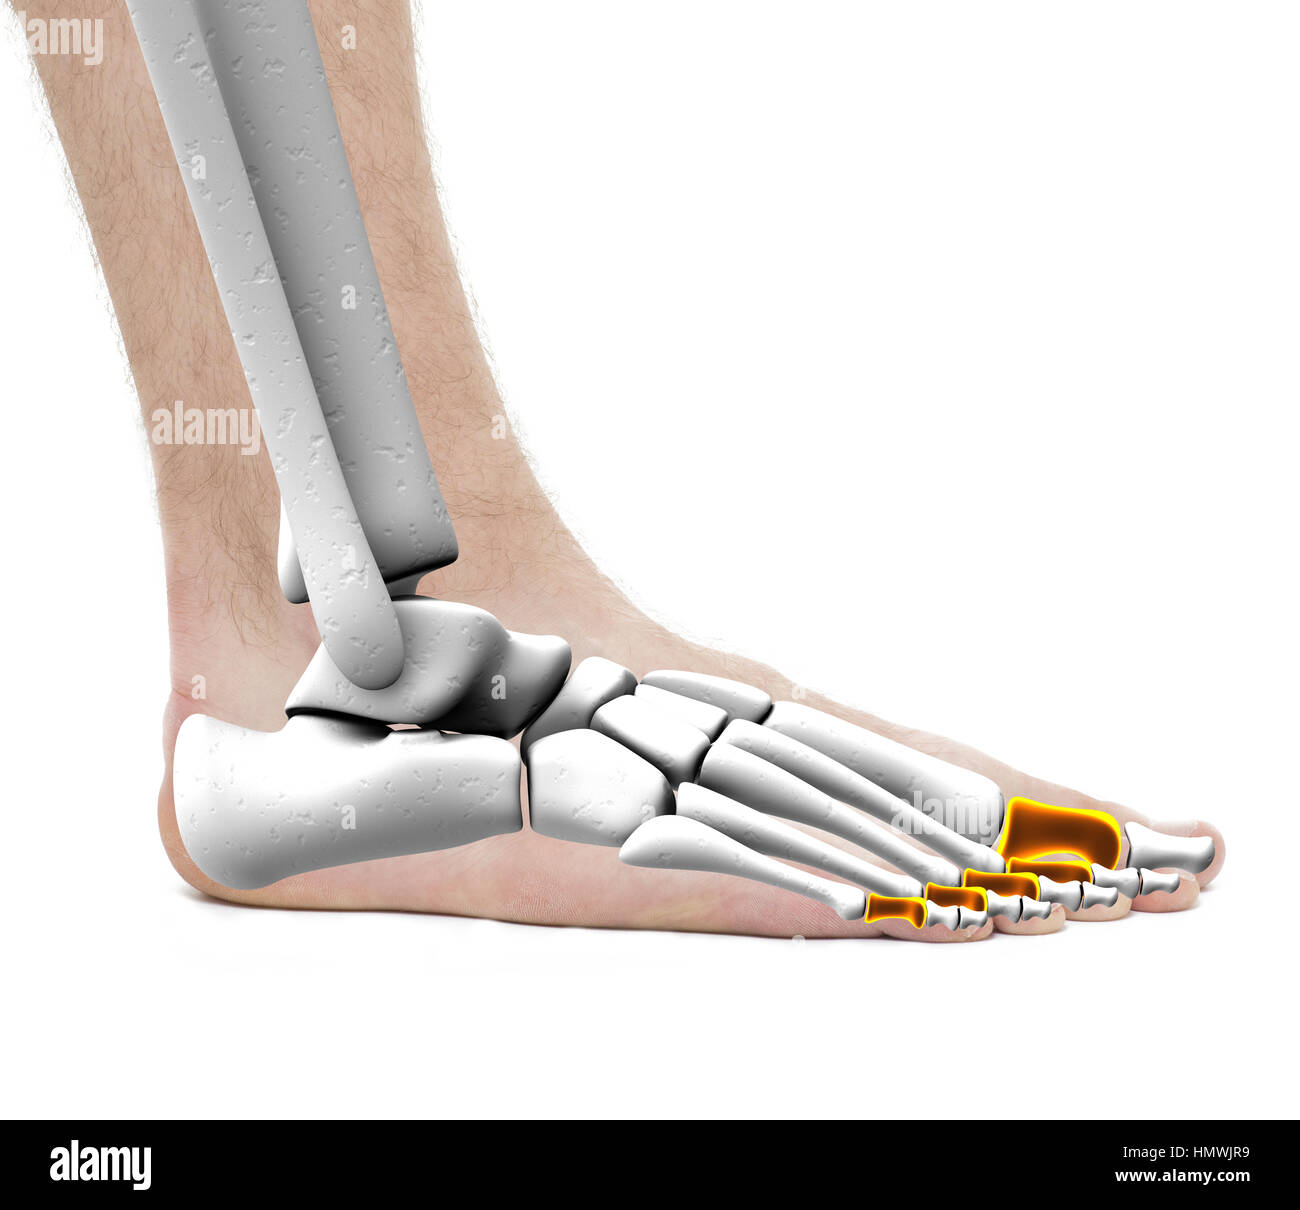 Proximal Tibia Stockfotos & Proximal Tibia Bilder - Alamy